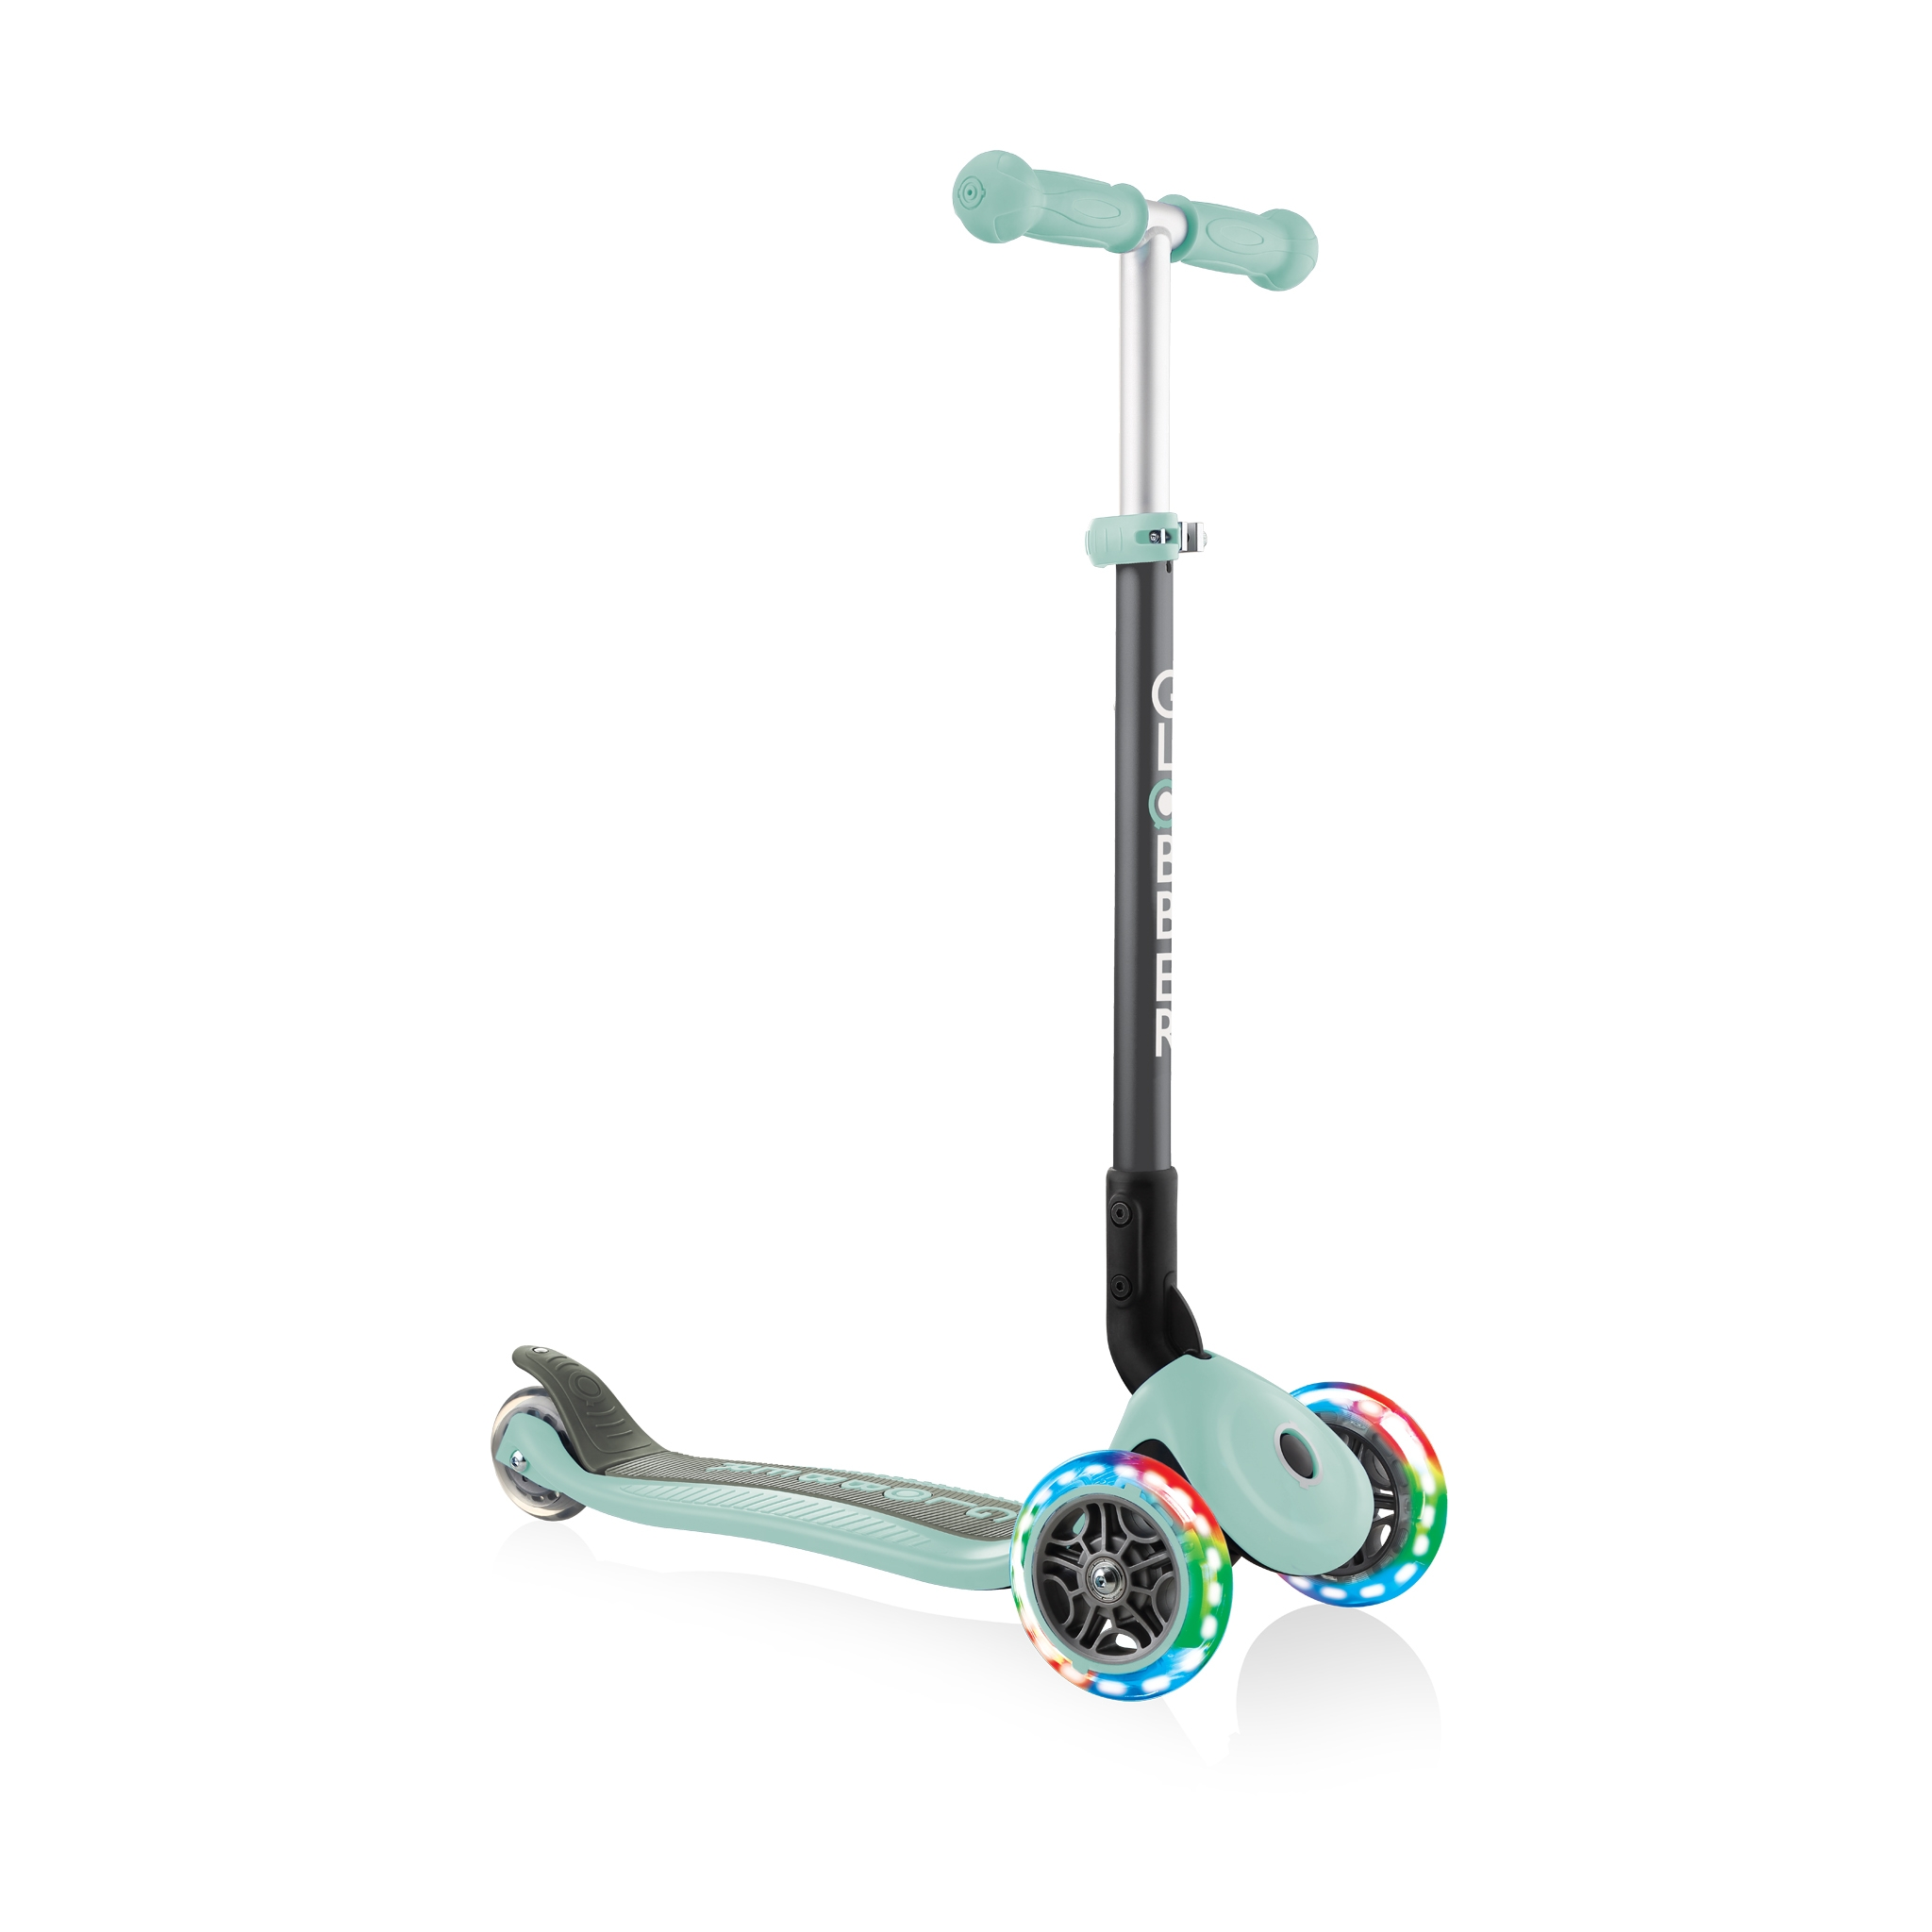 PRIMO-FOLDABLE-LIGHTS-3-wheel-foldable-scooter-light-up-scooter-for-kids 4